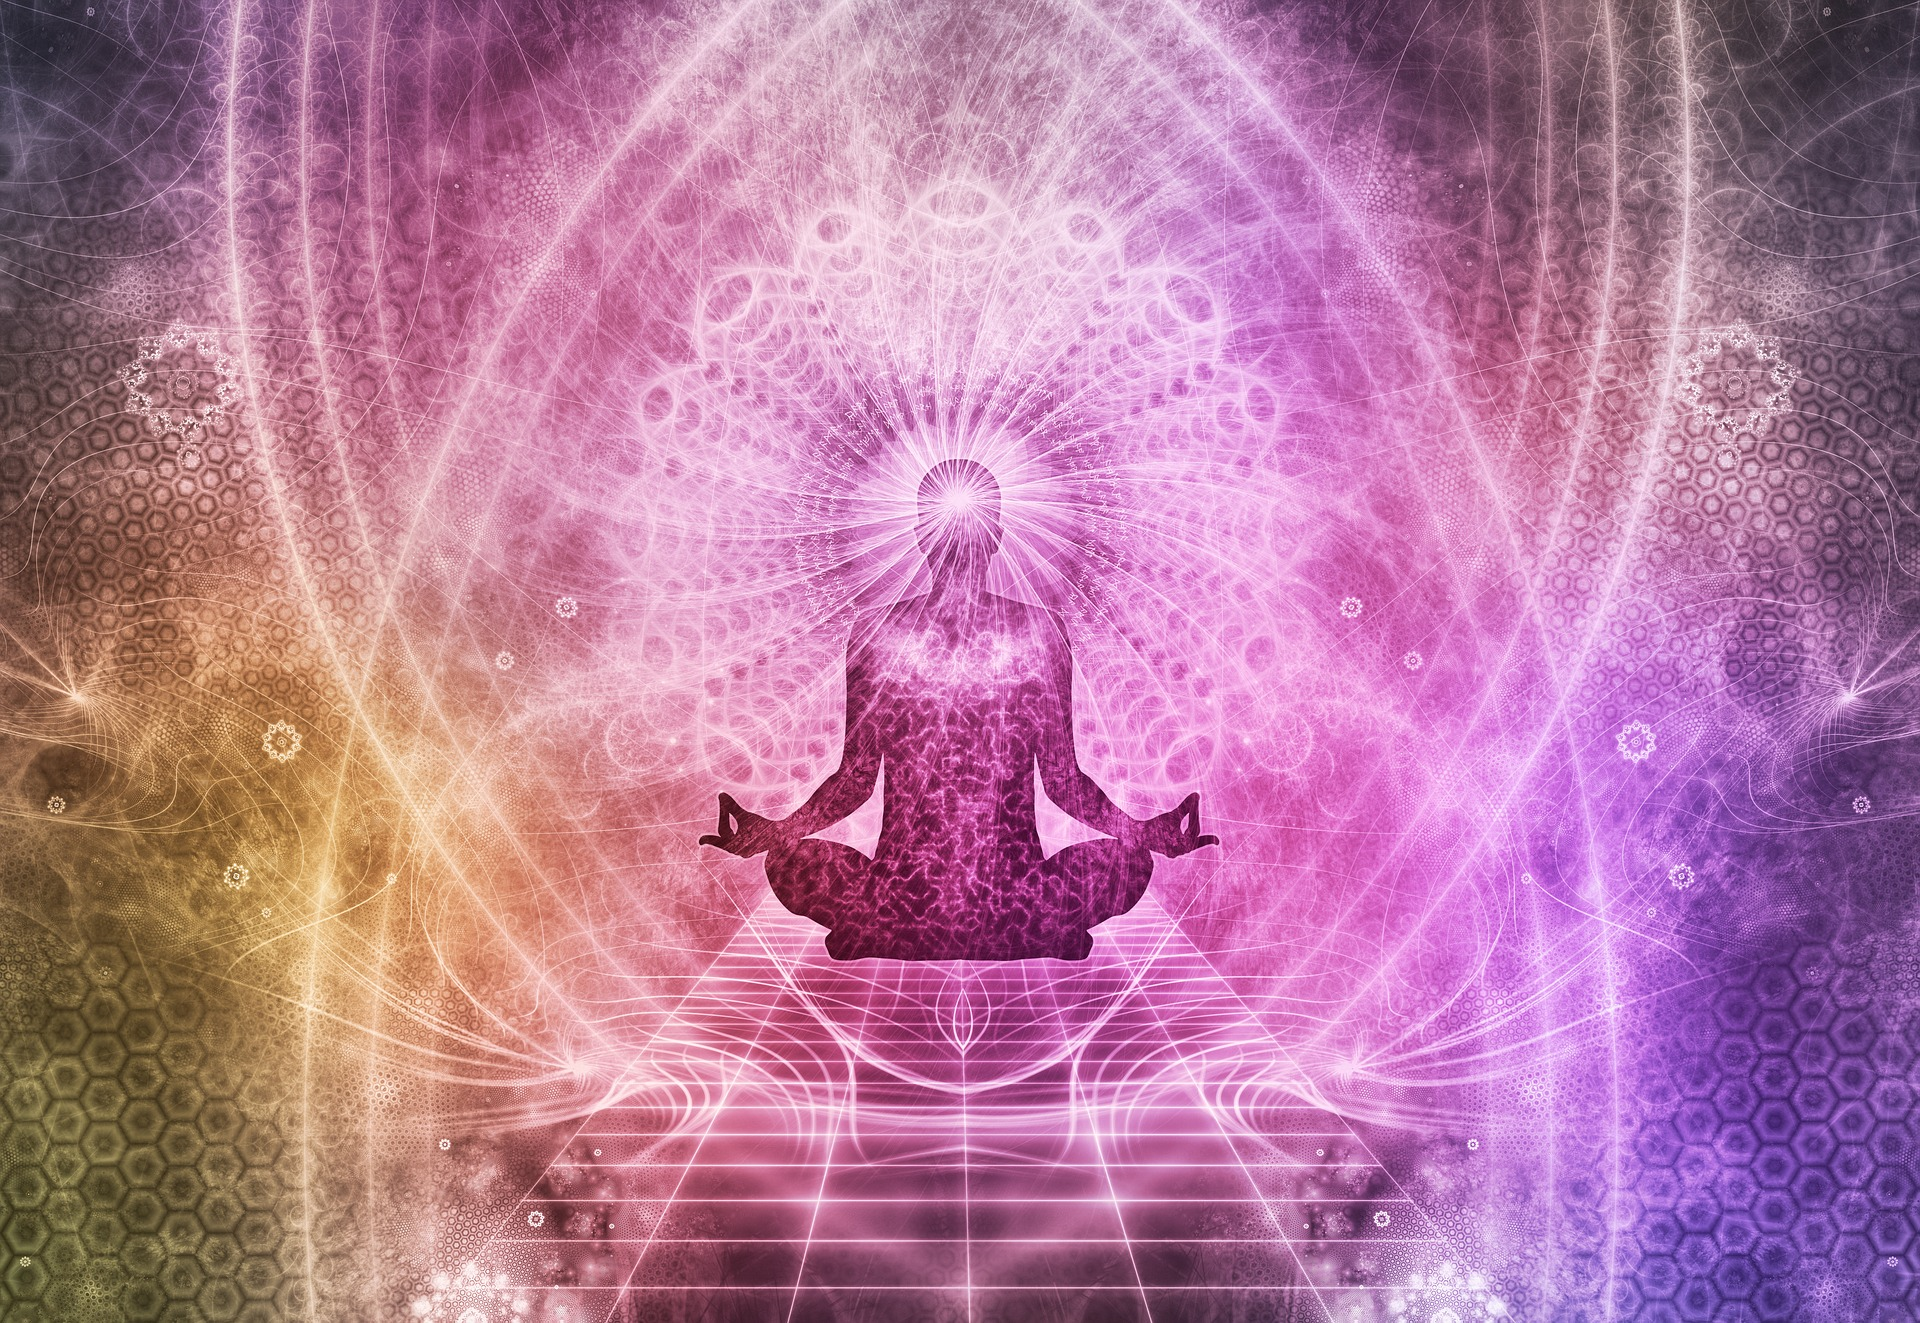 Tesla Numbers and the Solfeggio Frequencies